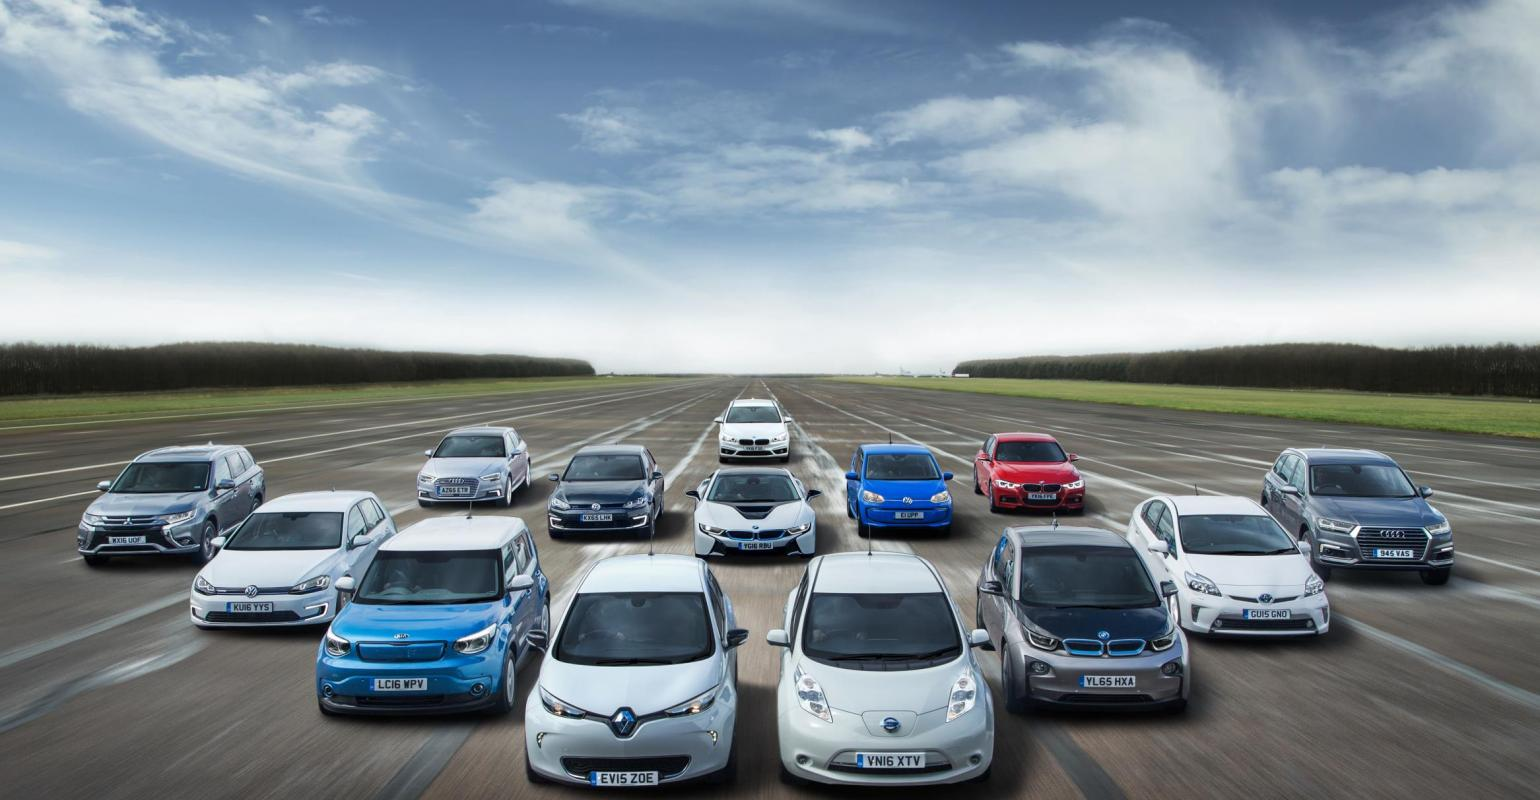 Fewer Than 2000 Evs In Uk 2017 Cur Count Tops 100000